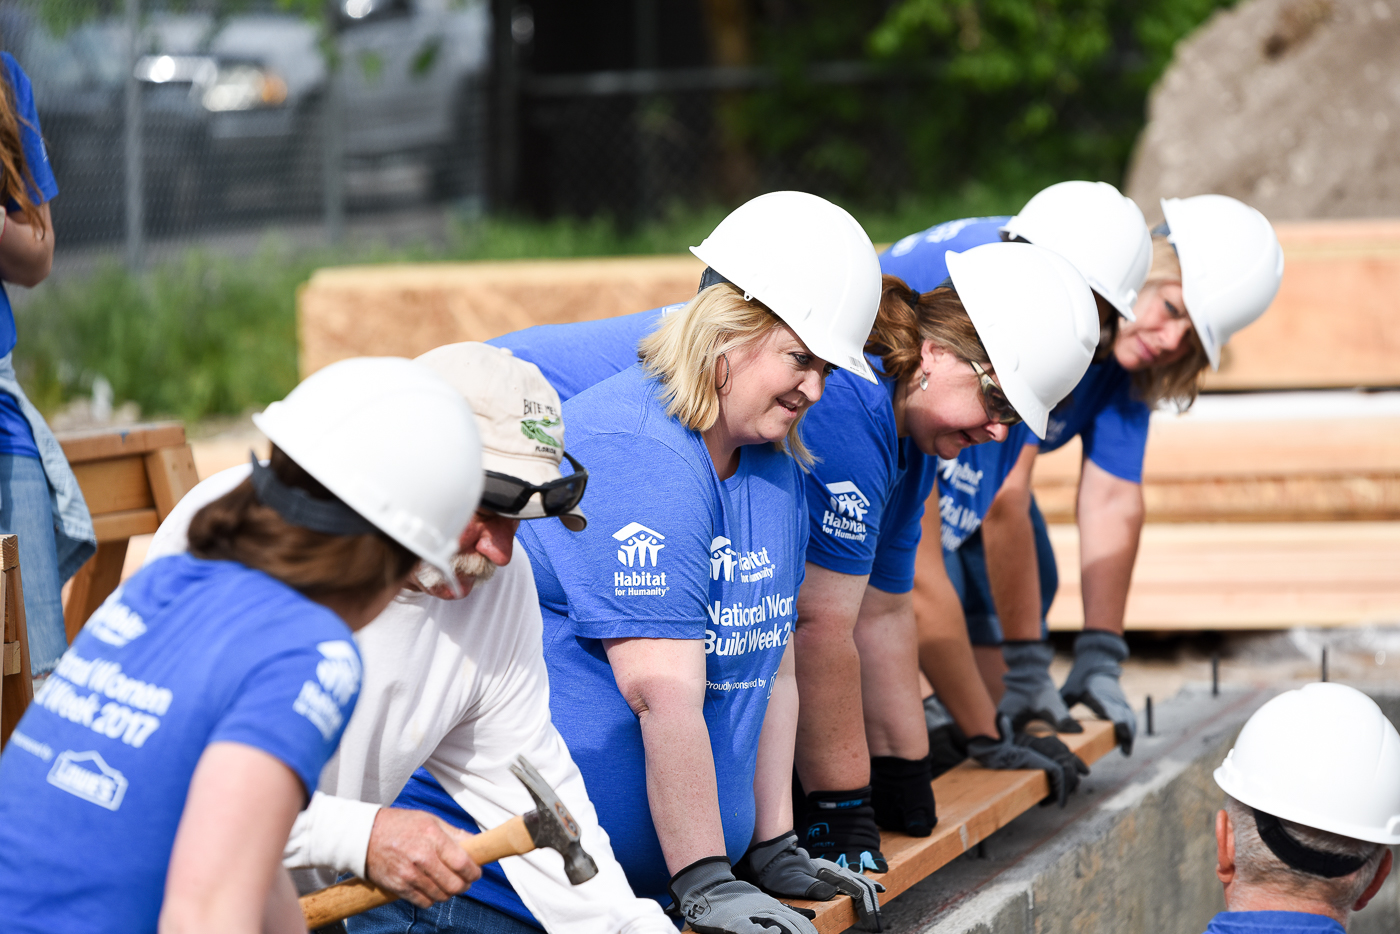 Habitat for Humanity with Lowe's